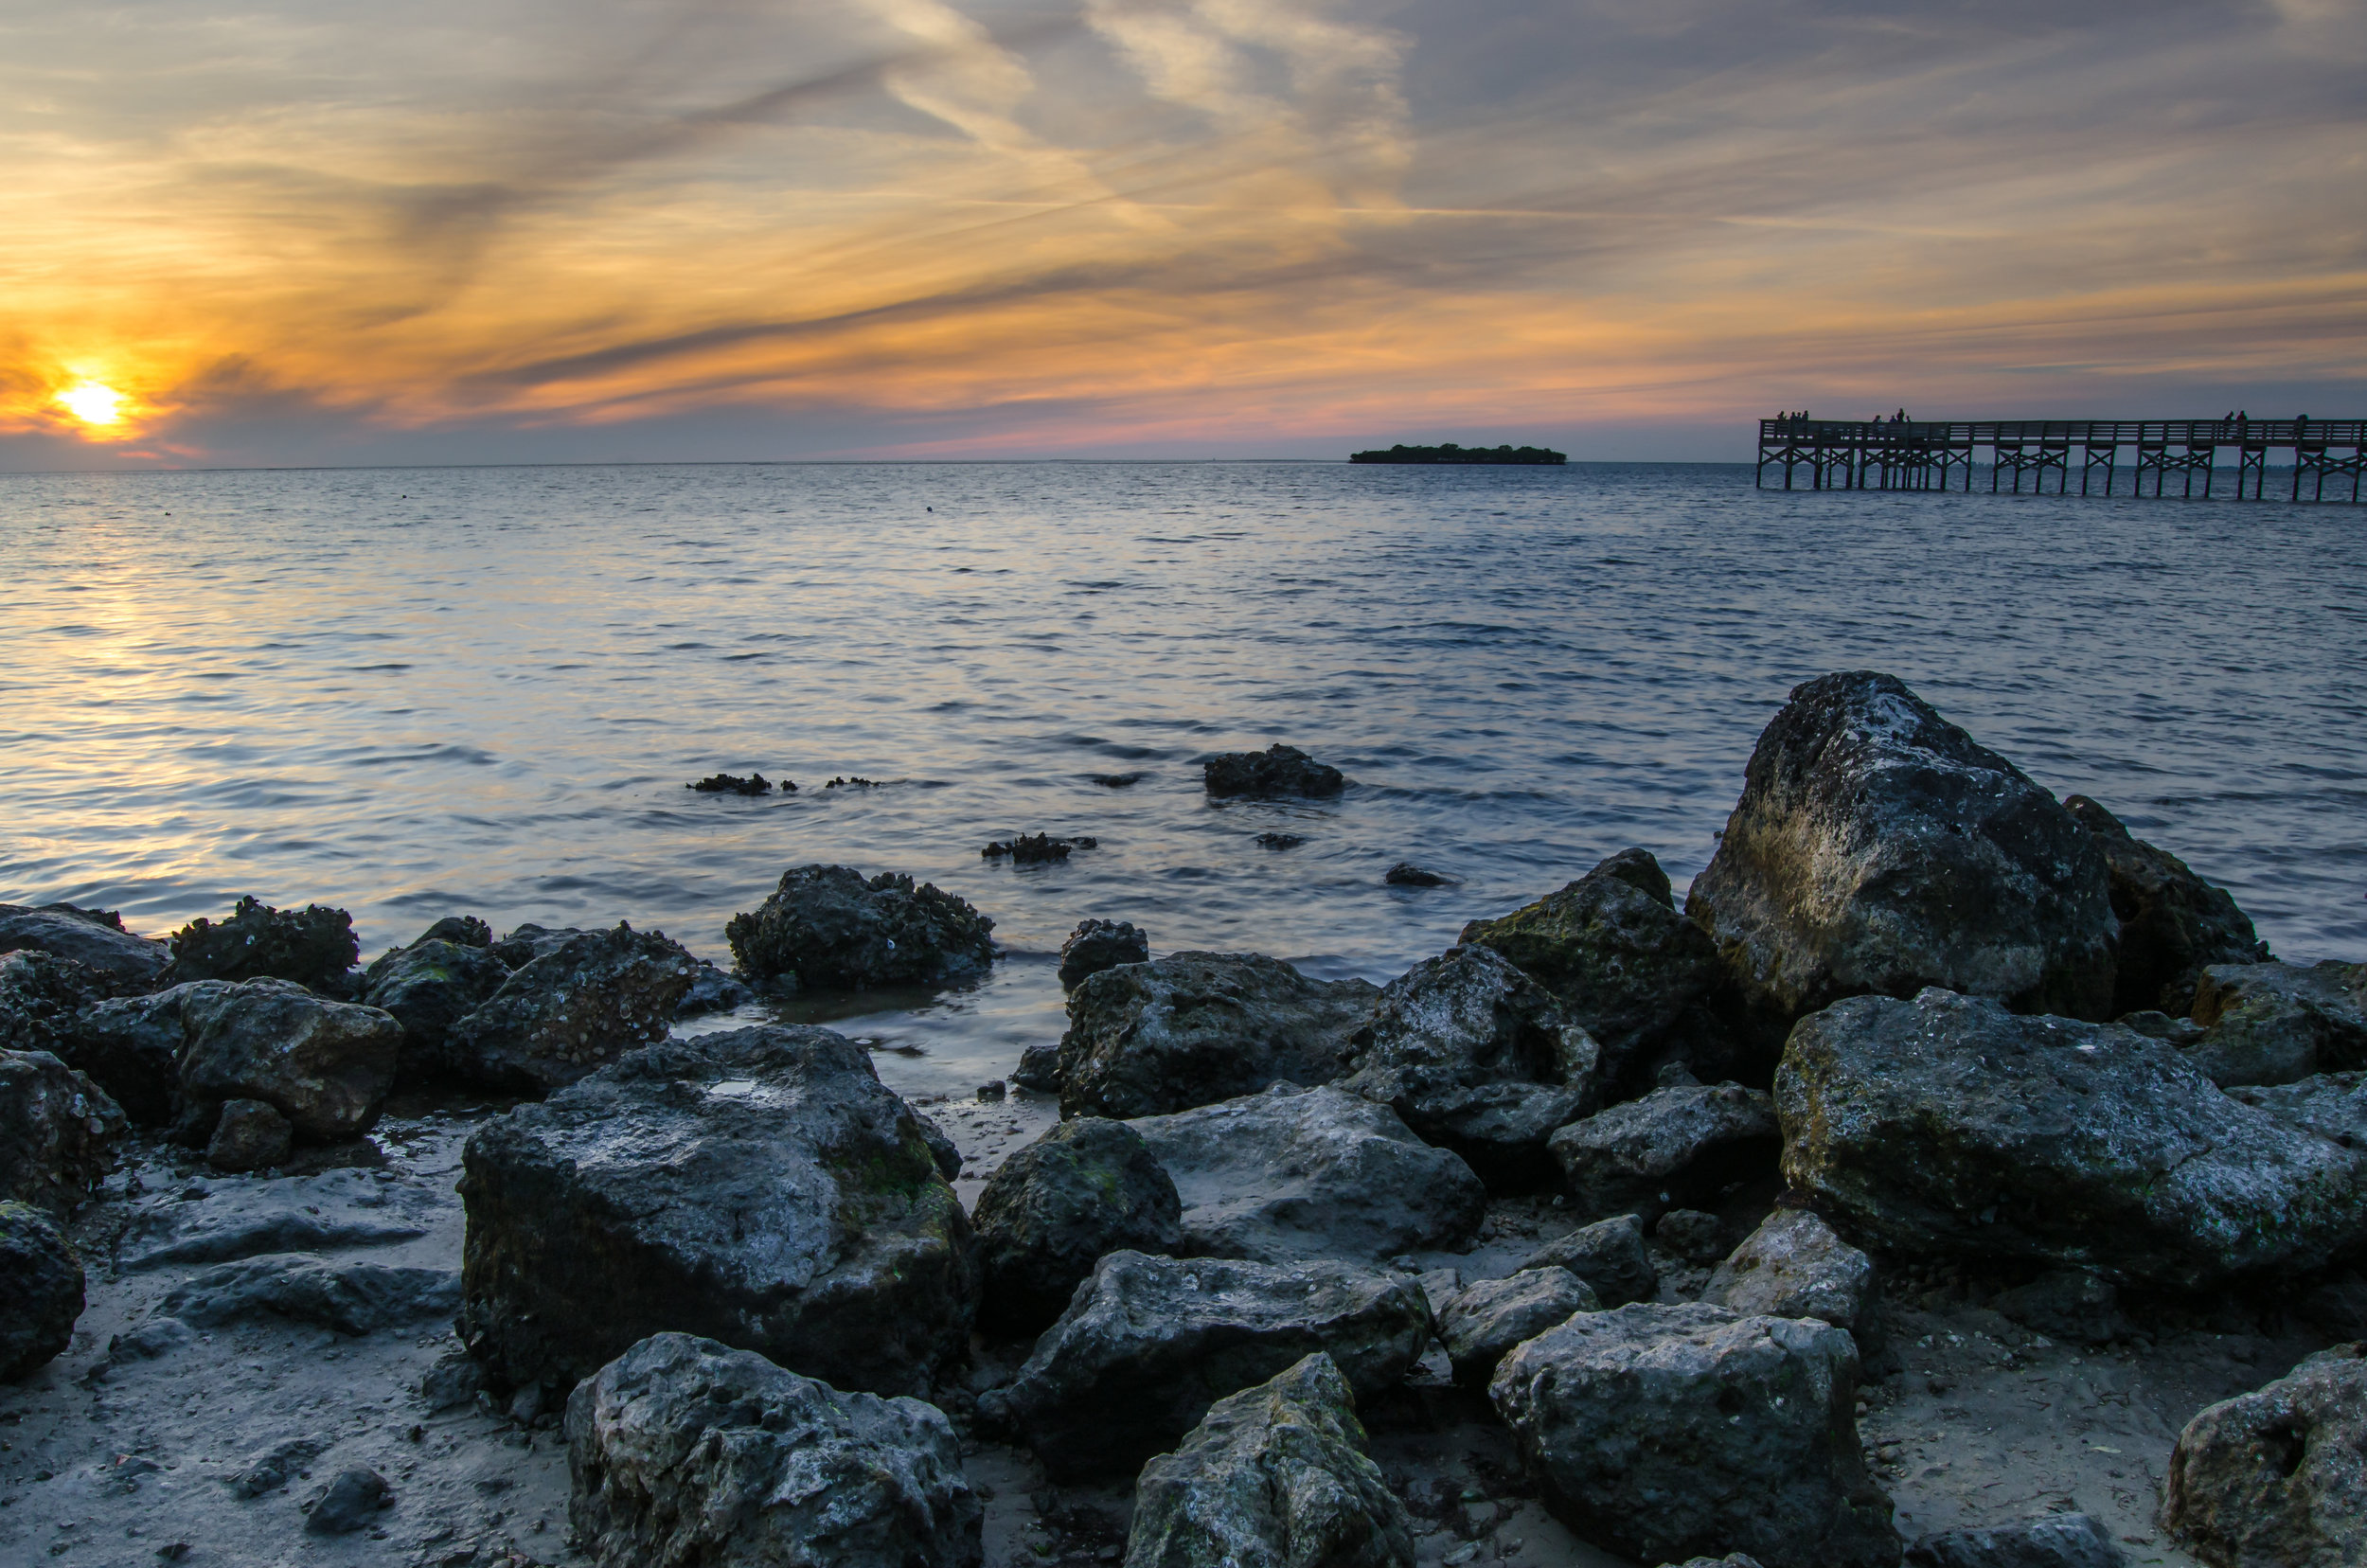 fort island-gulf of mexico-sunset-citrus county-florida.jpg